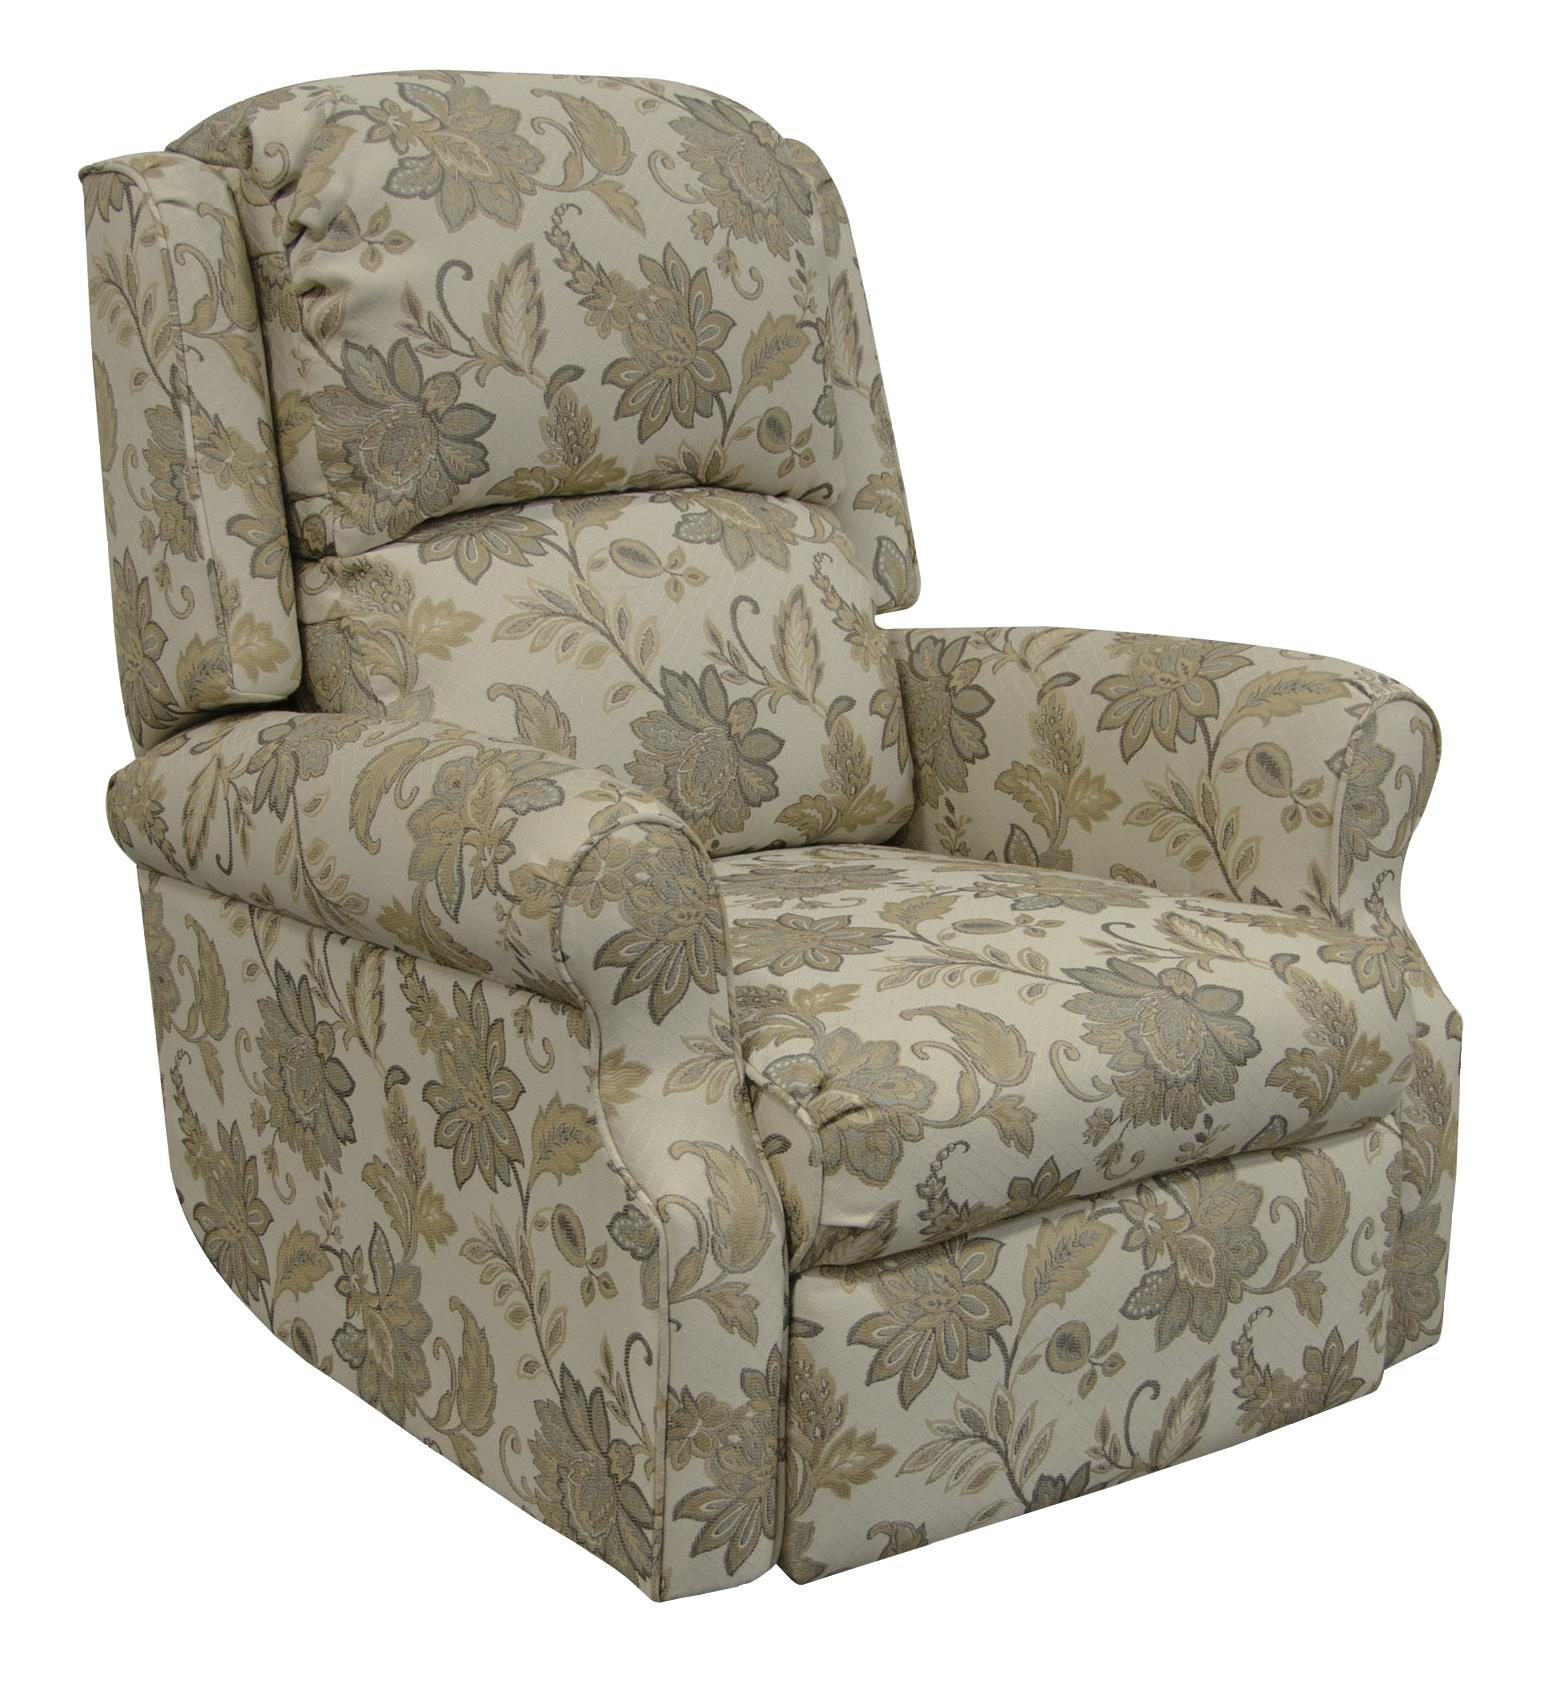 England Marybeth Reclining Lift Chair - Item Number: 210-55-6646